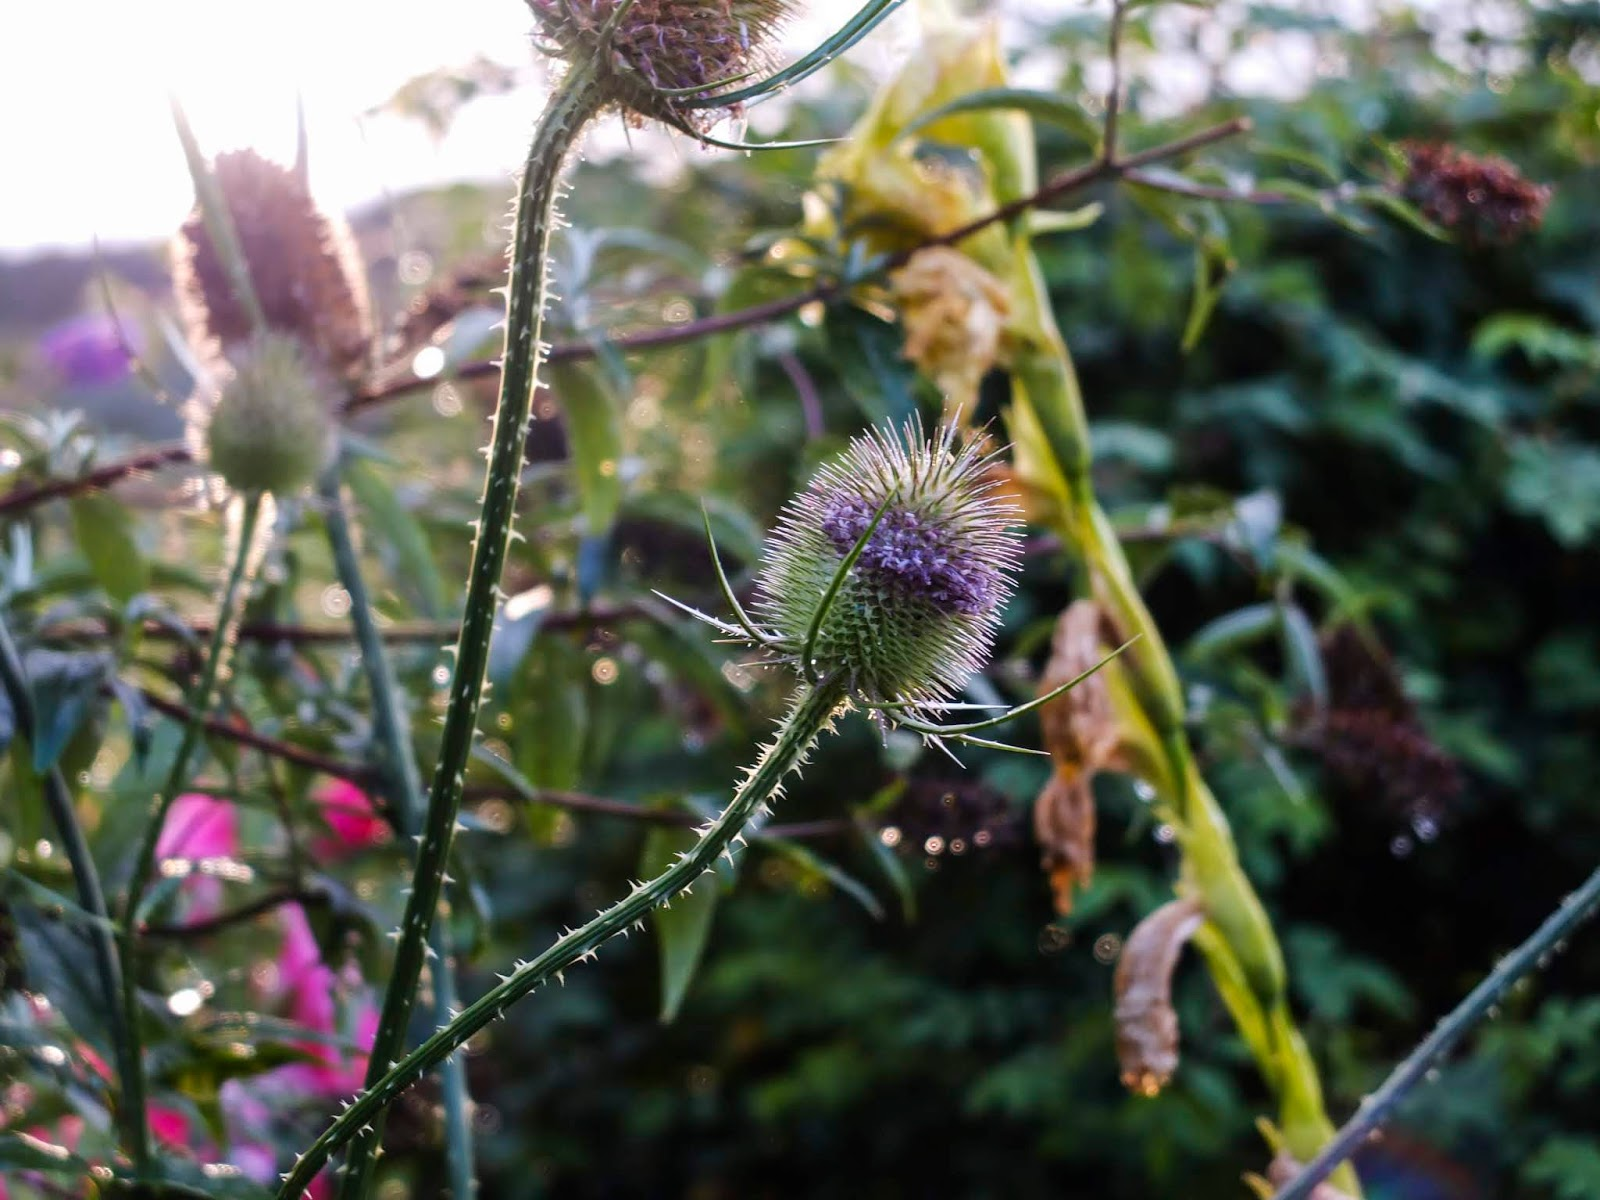 A close up of winter Teasel at sunset.